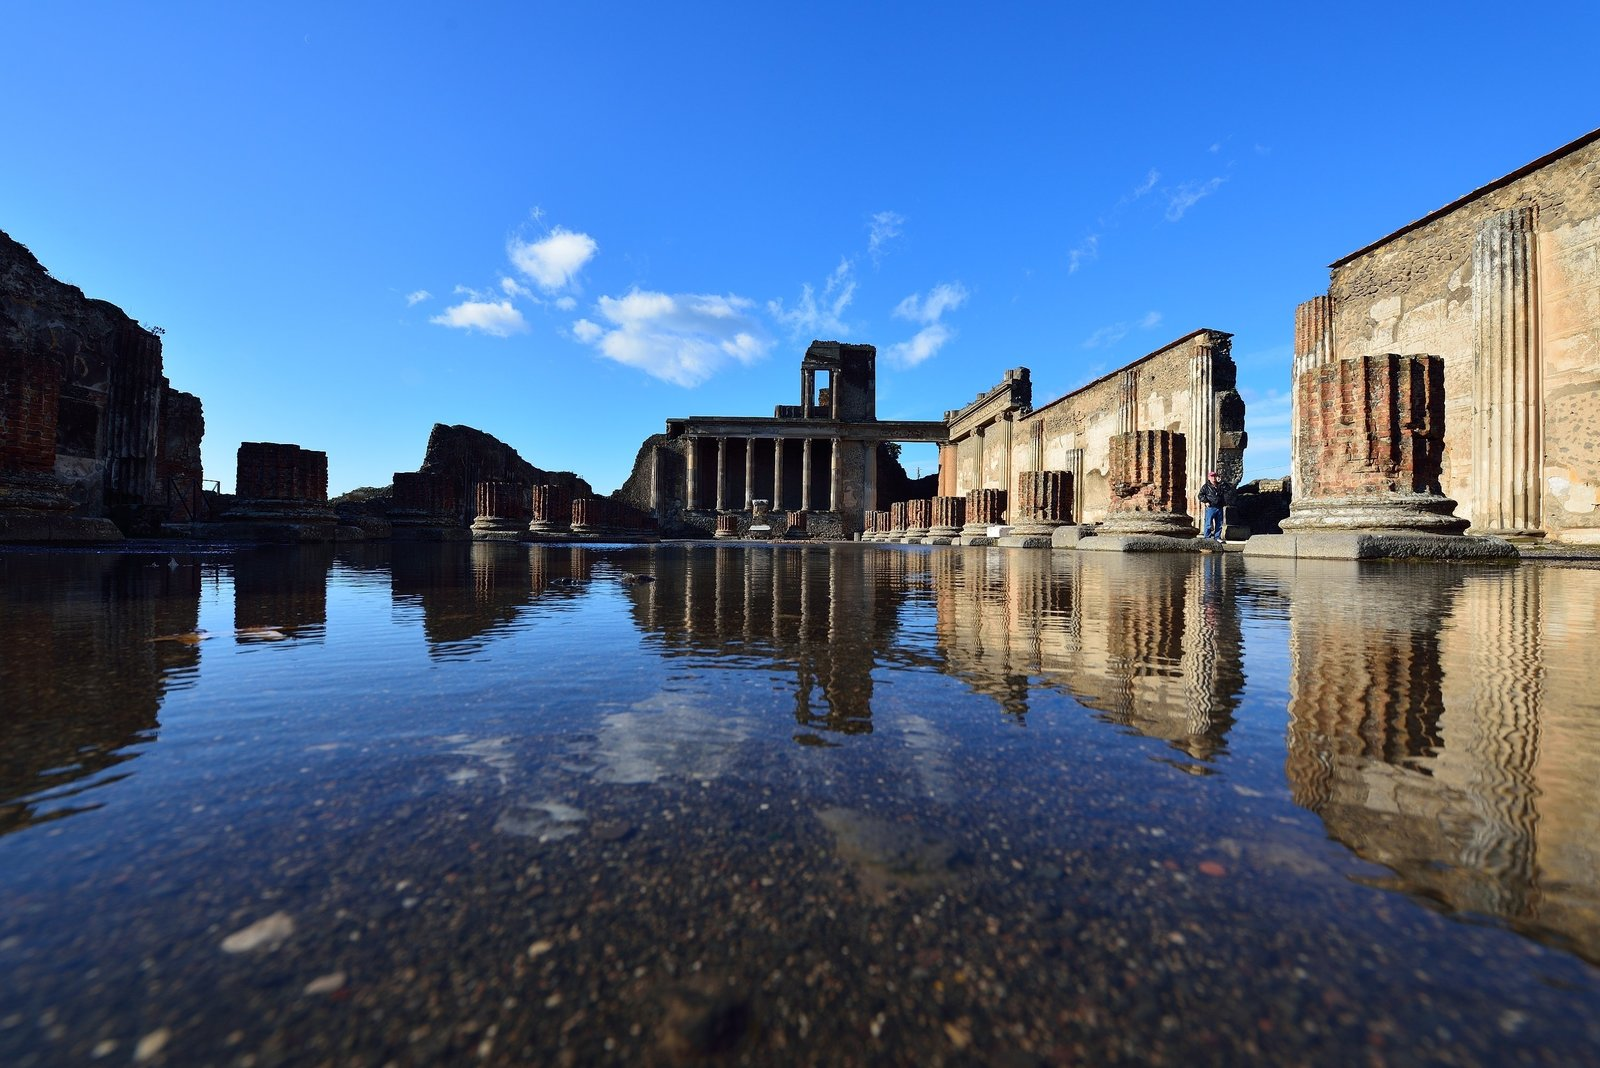 Pompeii reflection in water